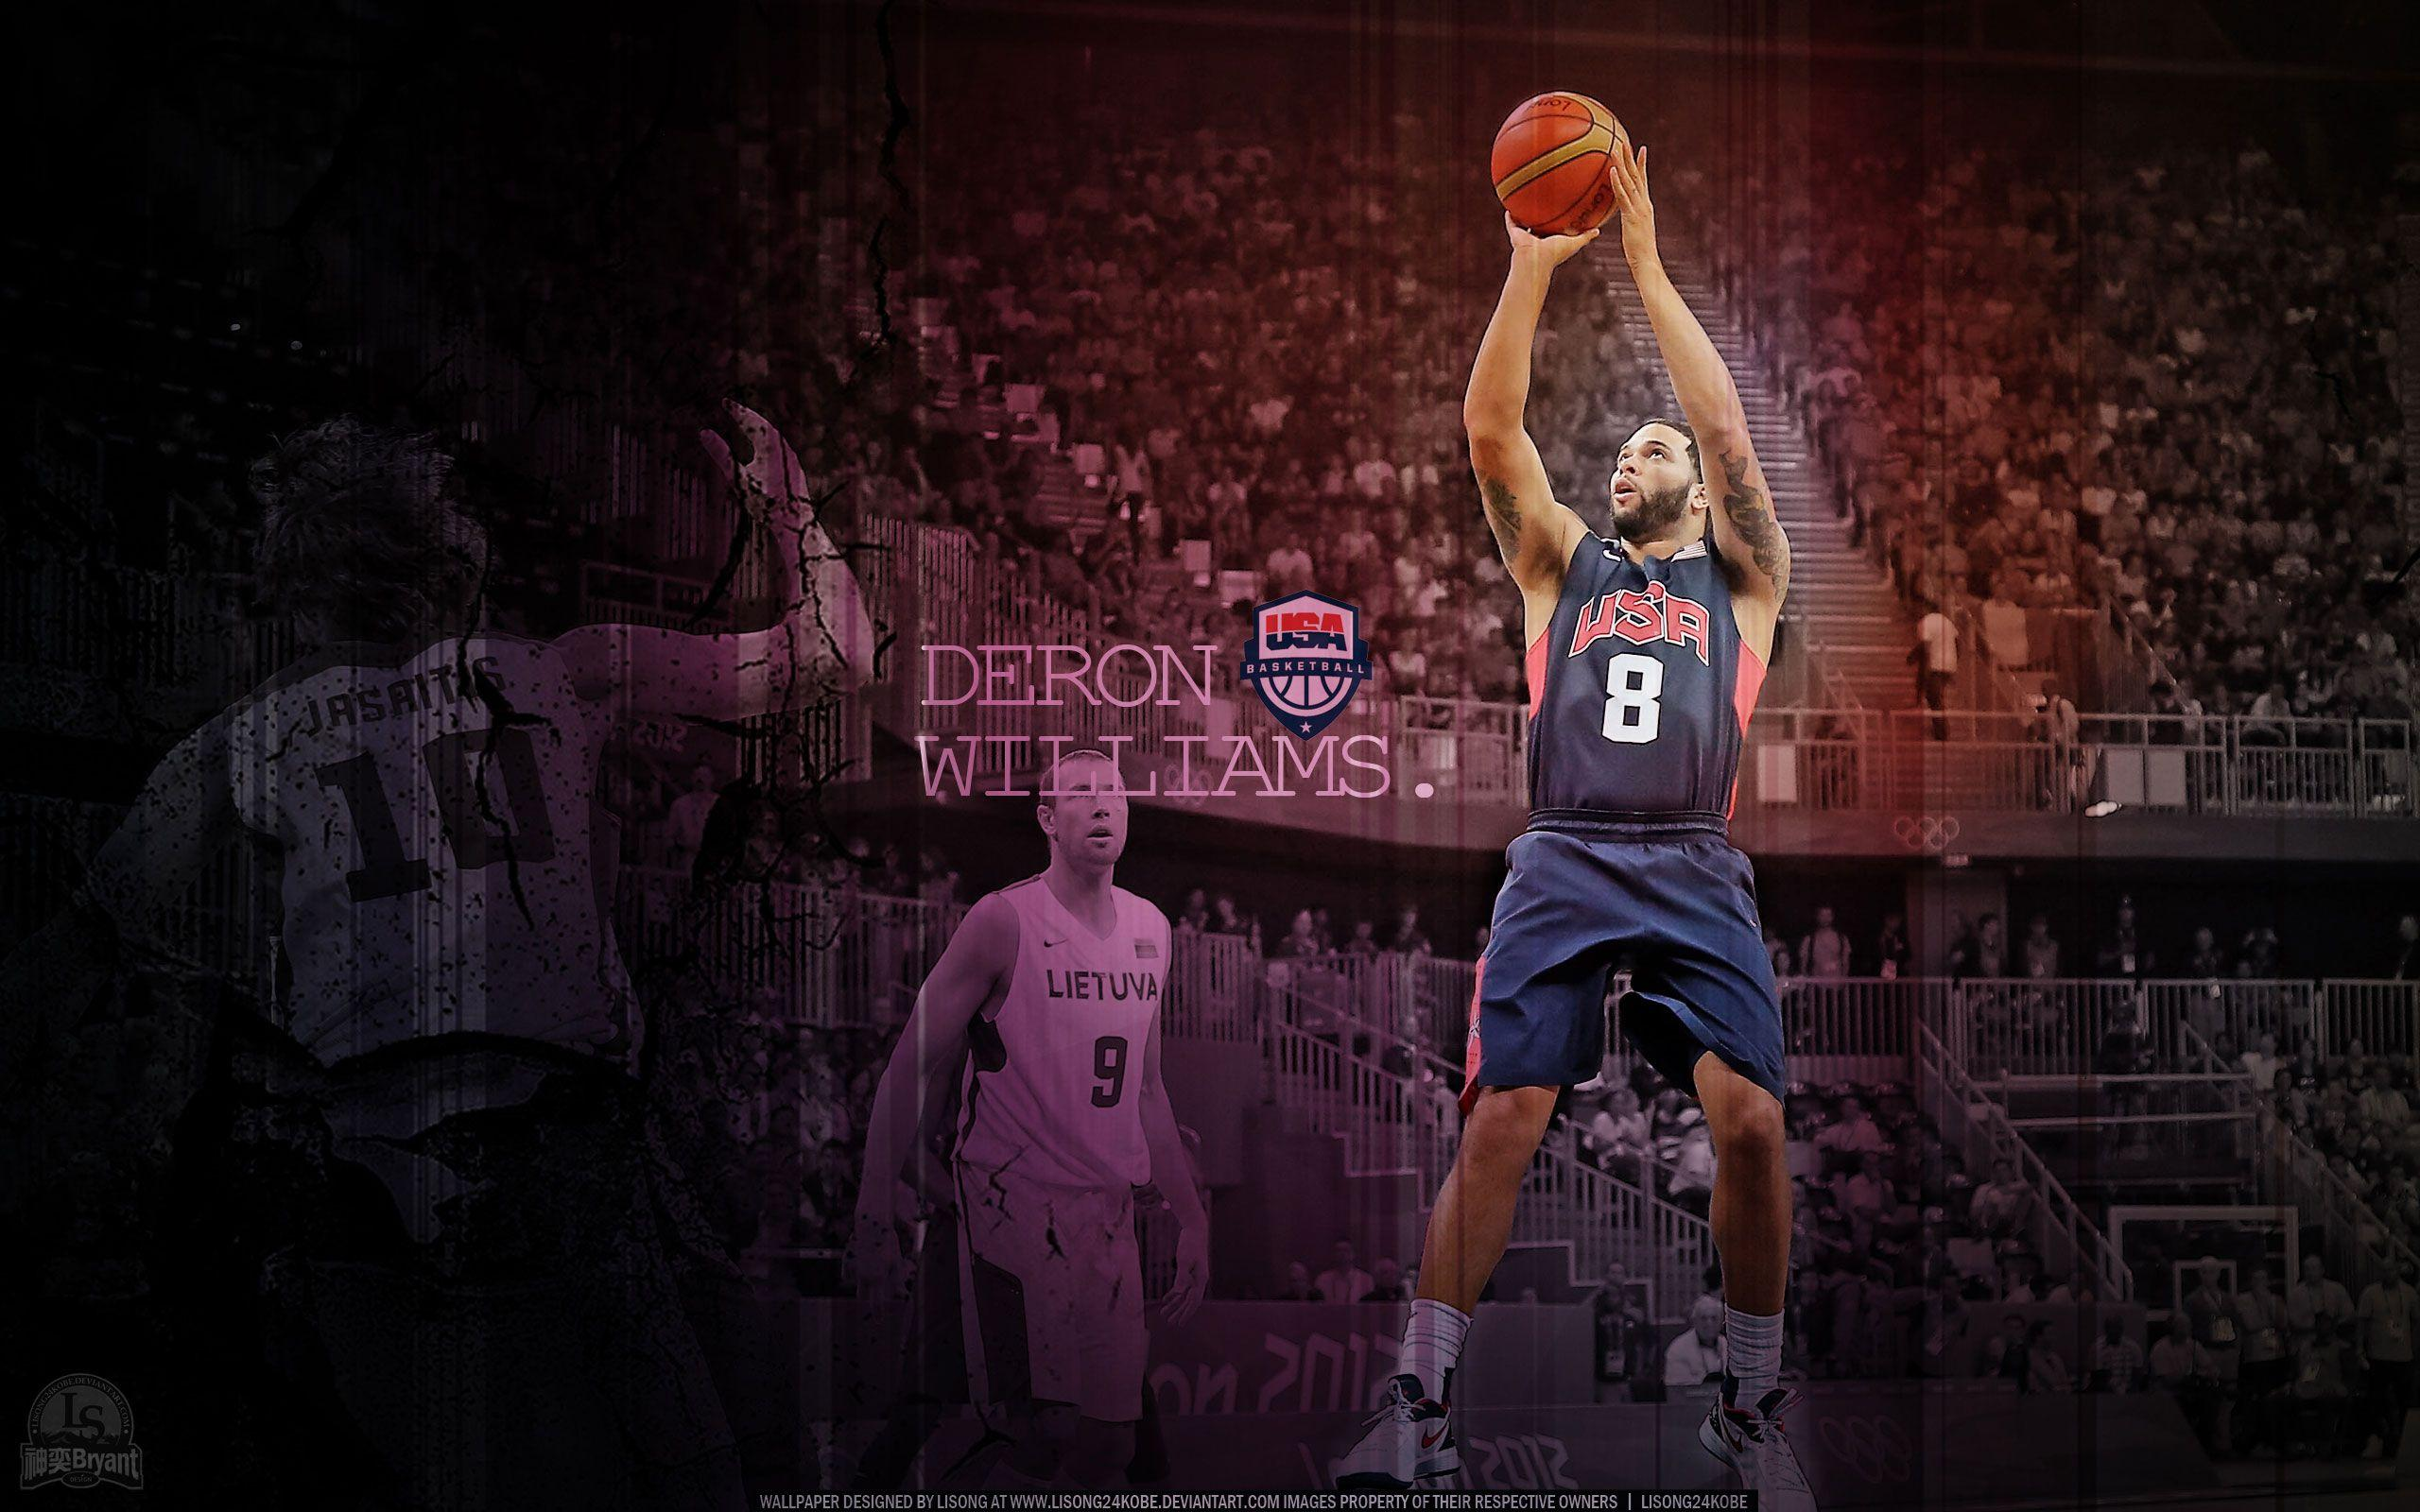 Deron Williams Olympics 2012 vs Lithuania 2560×1600 Wallpaper ...